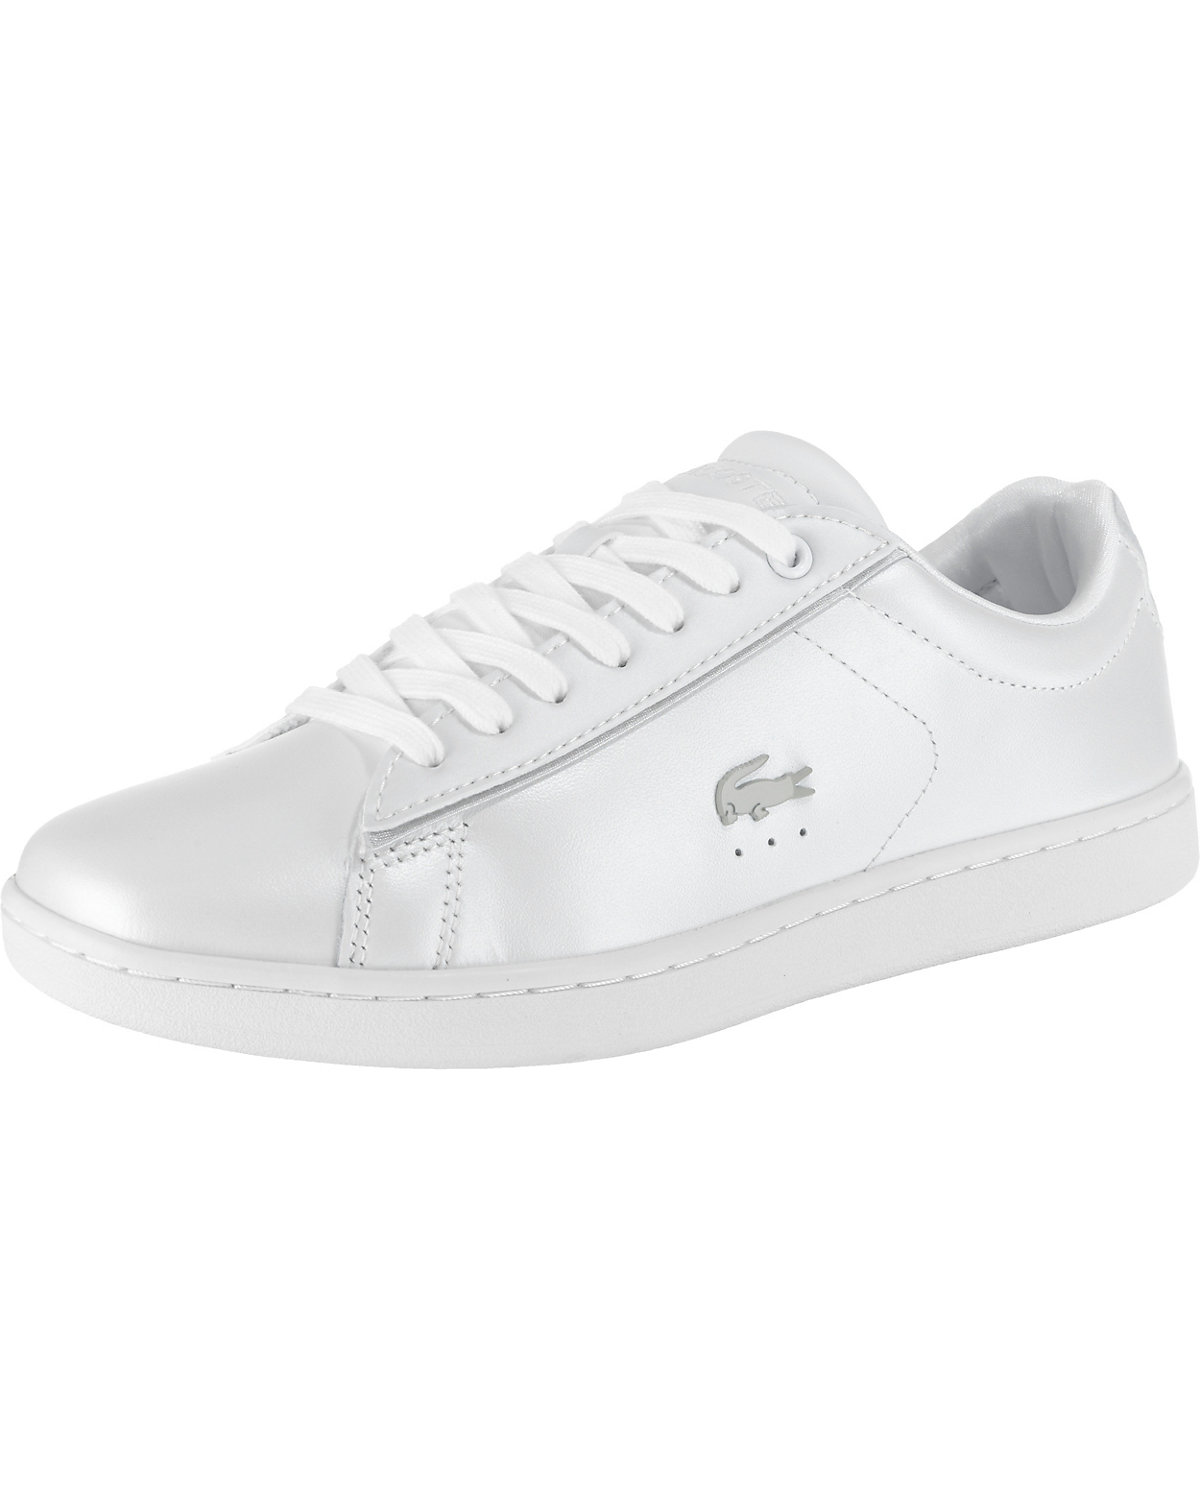 LACOSTE, 6 LACOSTE Carnaby Evo 118 6 LACOSTE, Spw Sneakers, weiß 0f4528